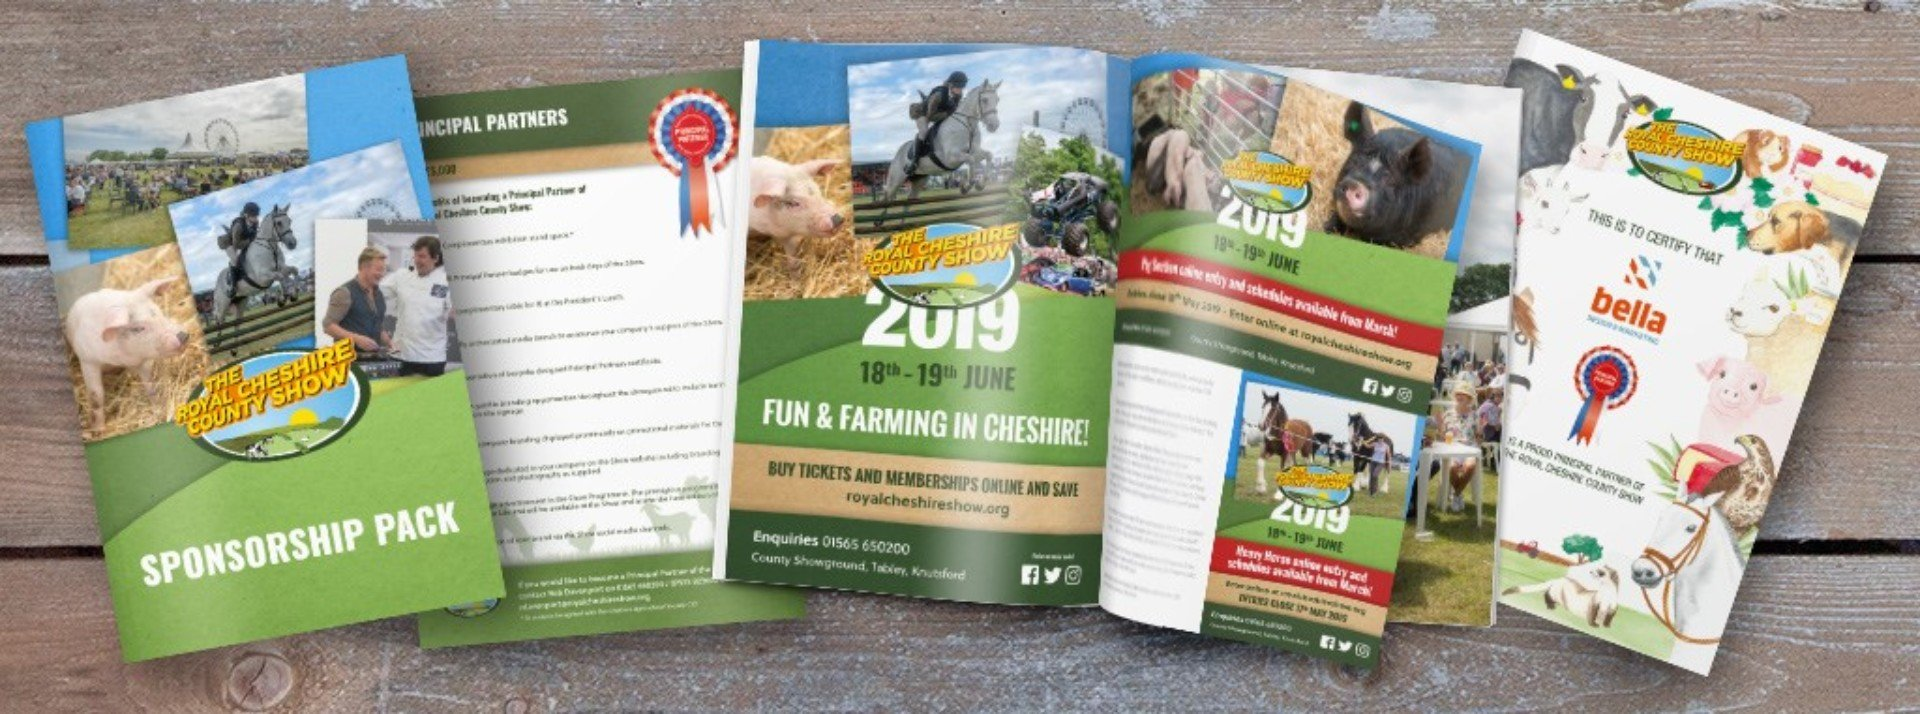 The Royal Cheshire Show 2019 Marketing Collateral